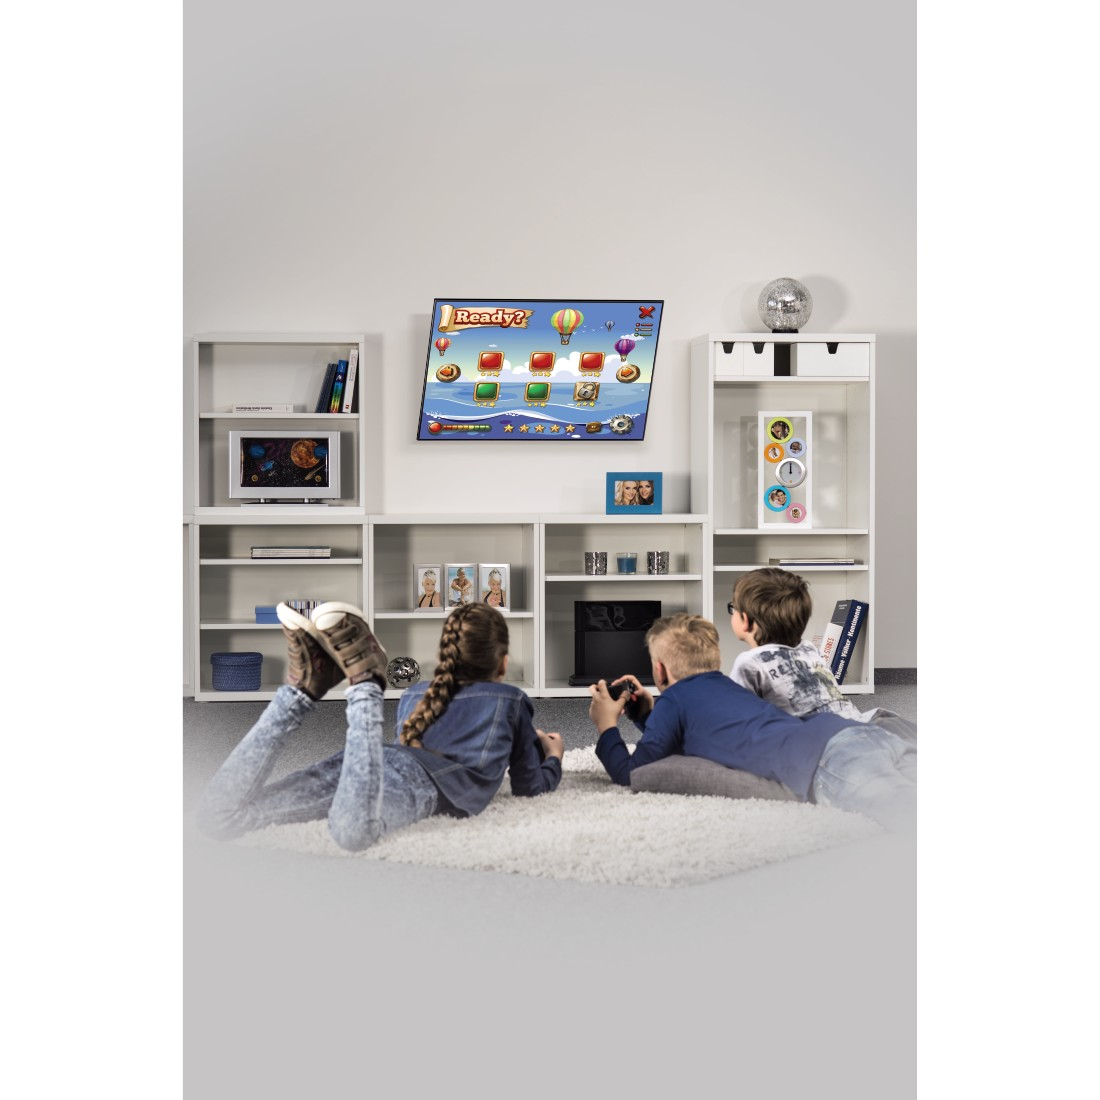 awx2 High-Res Appliance 2 - Hama, Support mural TV inclinable, 3 étoiles, 107 cm (42''), noir